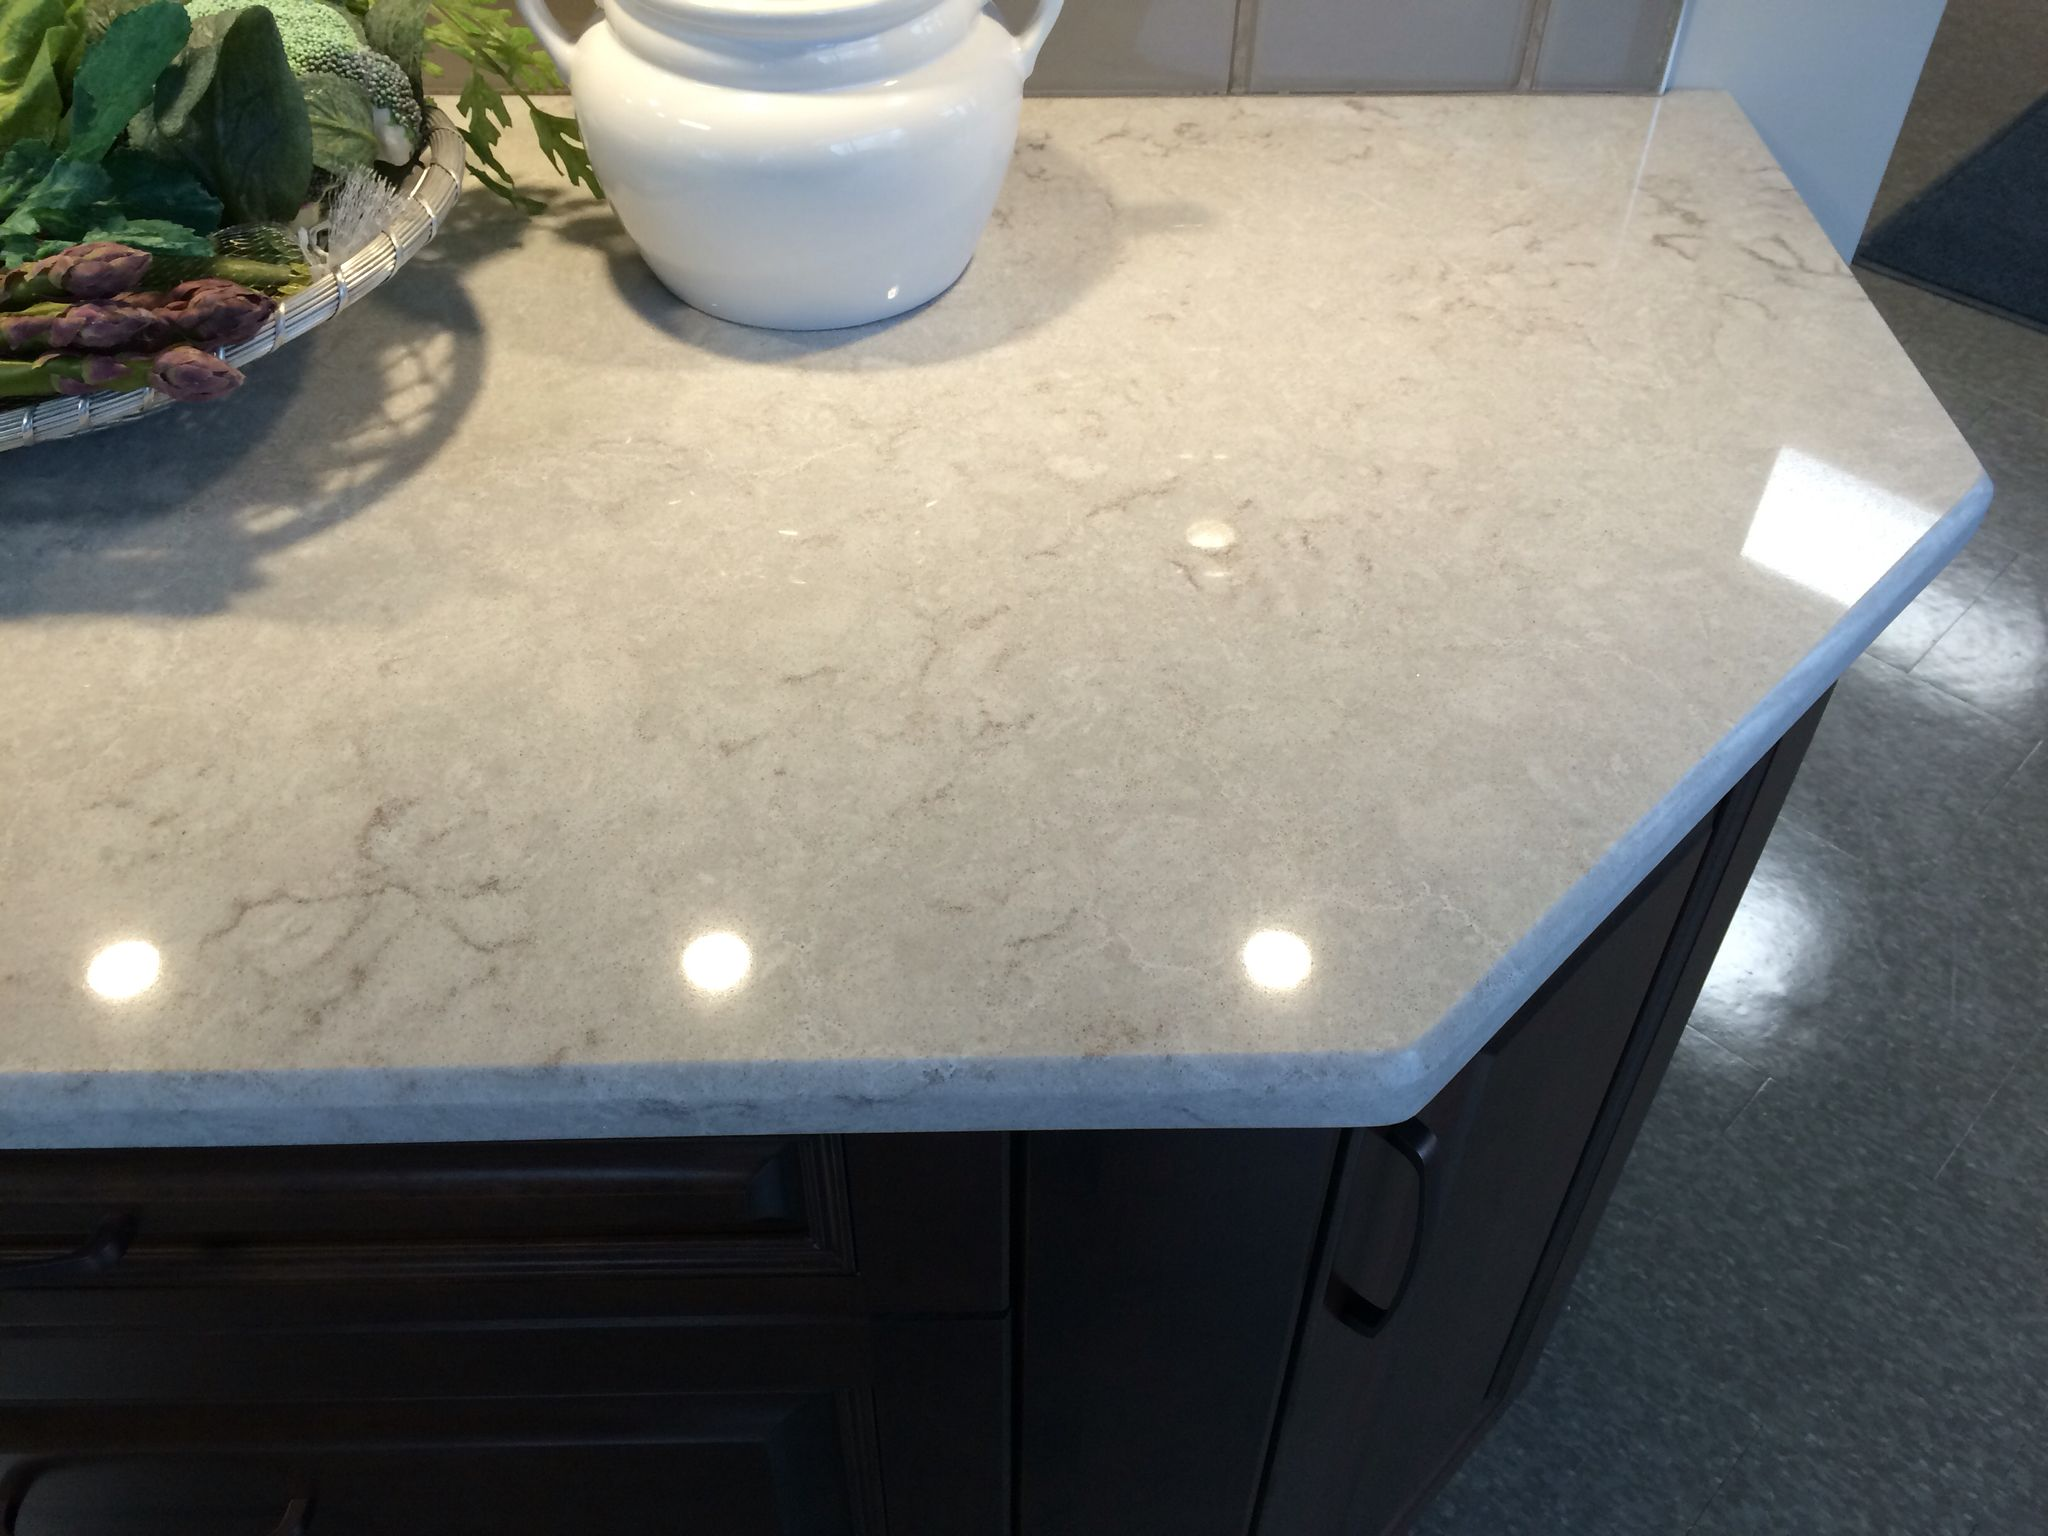 Kitchen Counter Caesarstone Bianco Drift Kitchen And Kitchenette